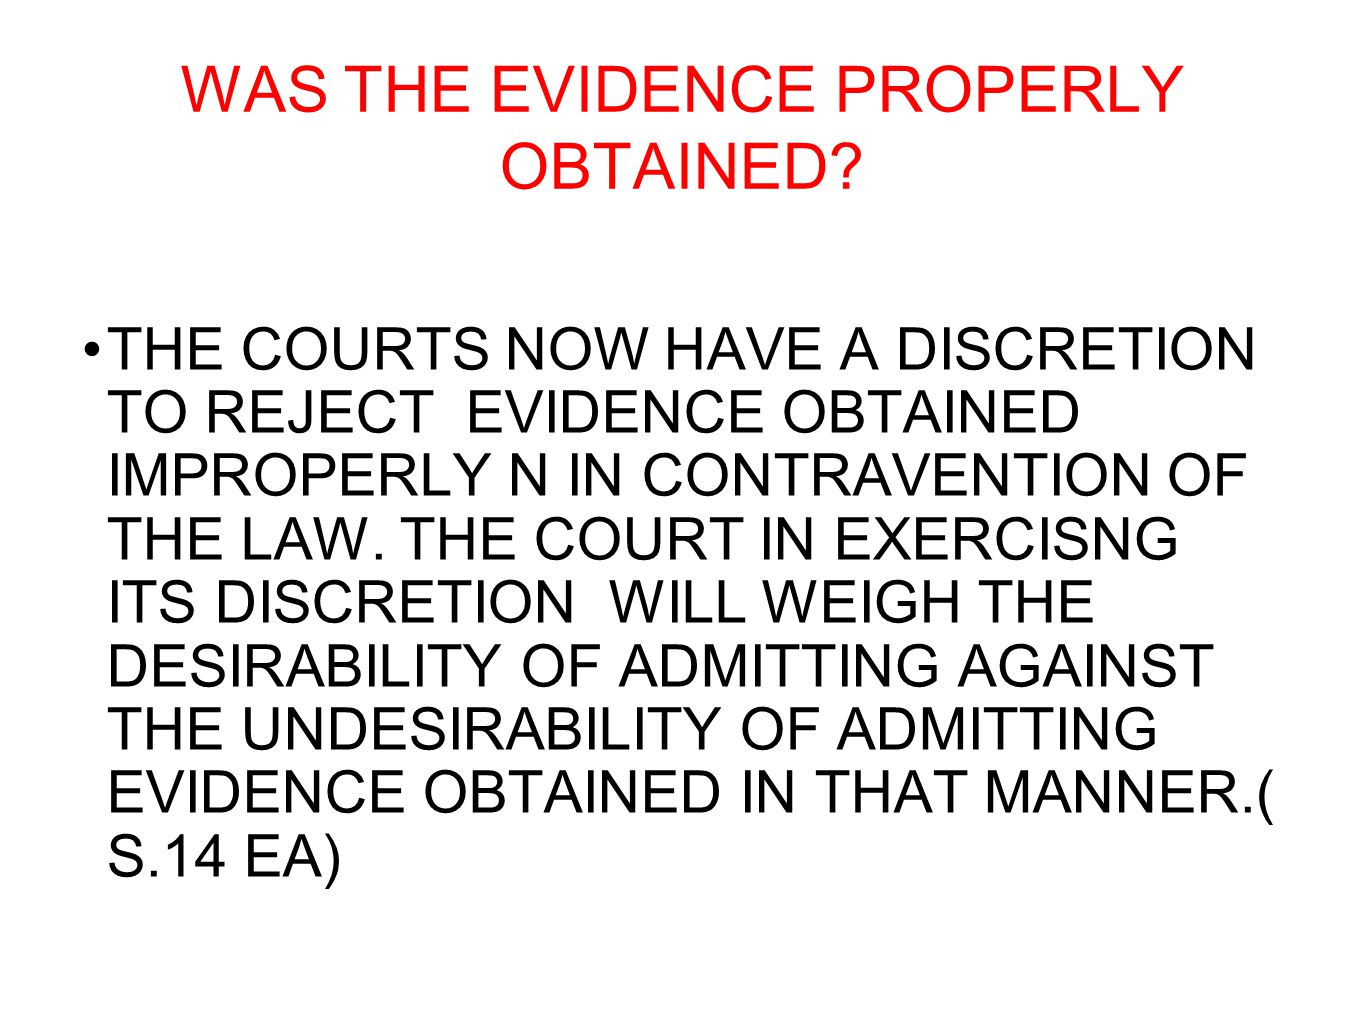 WAS THE EVIDENCE PROPERLY OBTAINED? THE COURTS NOW HAVE A DISCRETION TO REJECT EVIDENCE OBTAINED IMPROPERLY N IN CONTRAVENTION OF THE LAW. THE COURT I